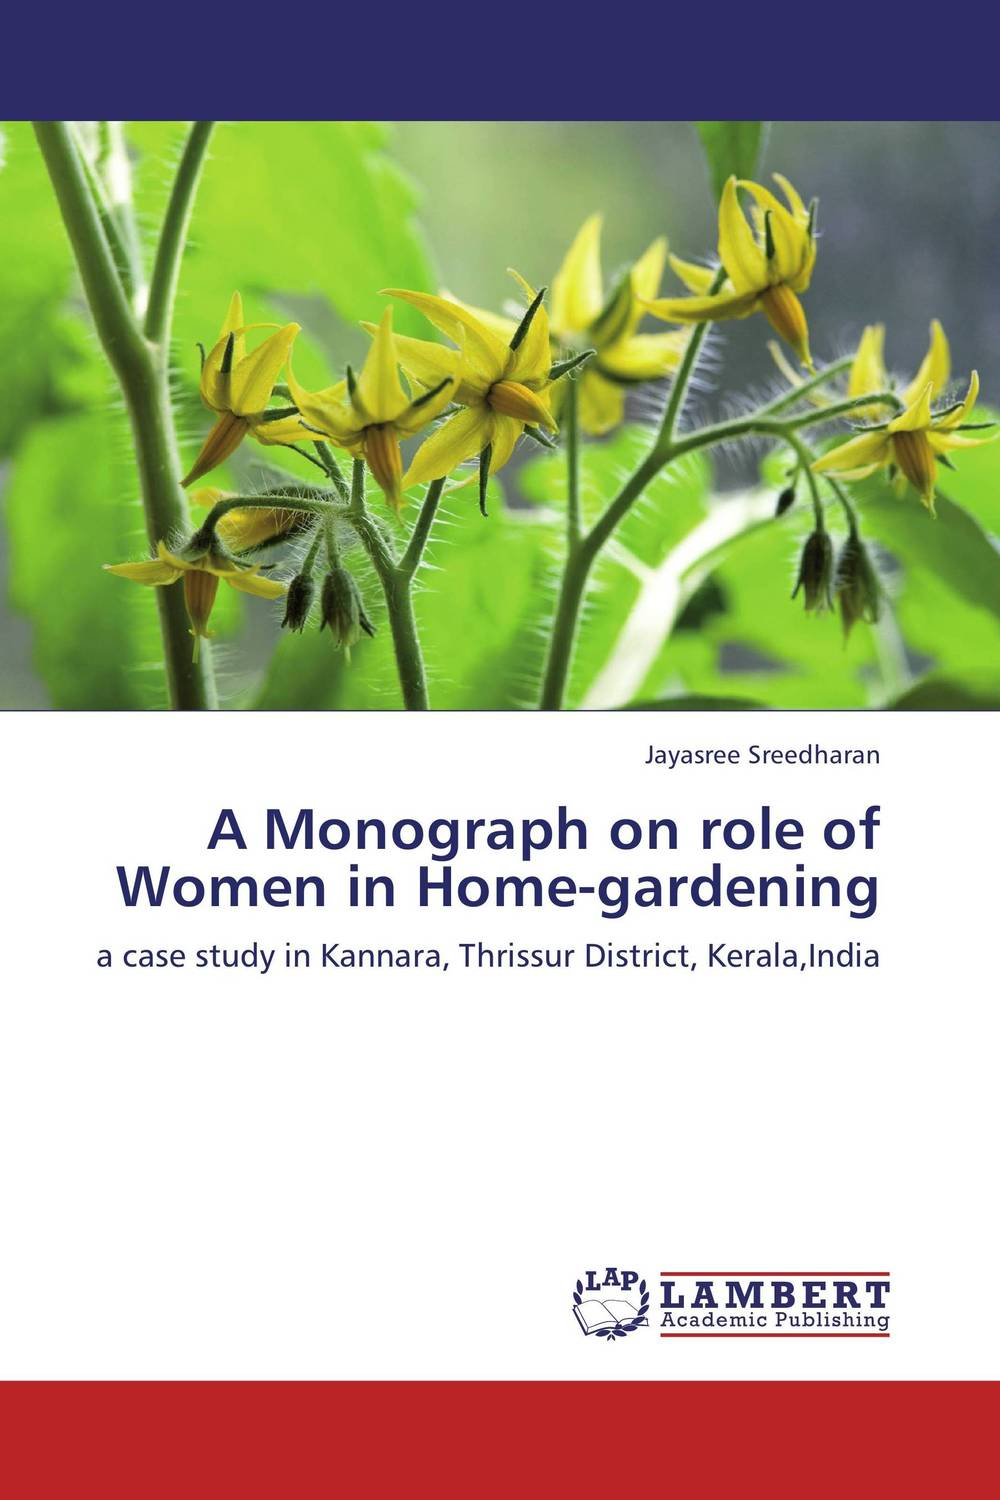 A Monograph on role of Women in Home-gardening george varghese diana john and solomon habtemariam medicinal plants for kidney stone a monograph